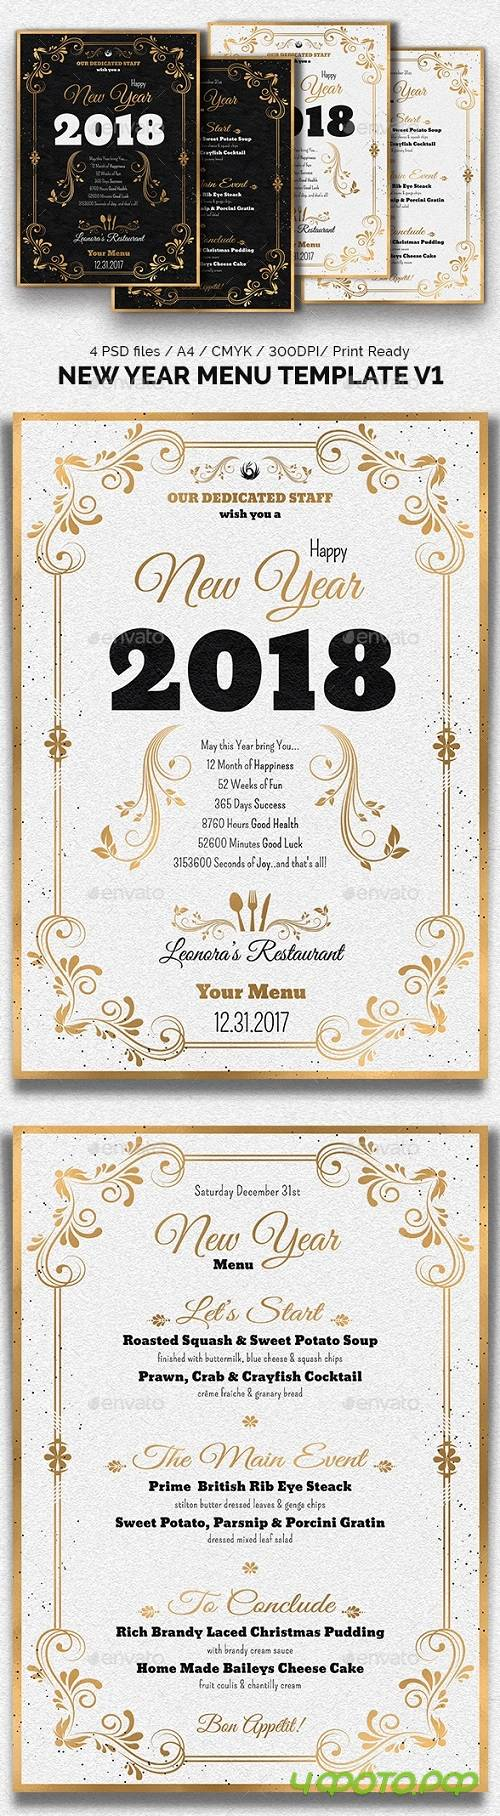 New Year Menu Template V1 13813477